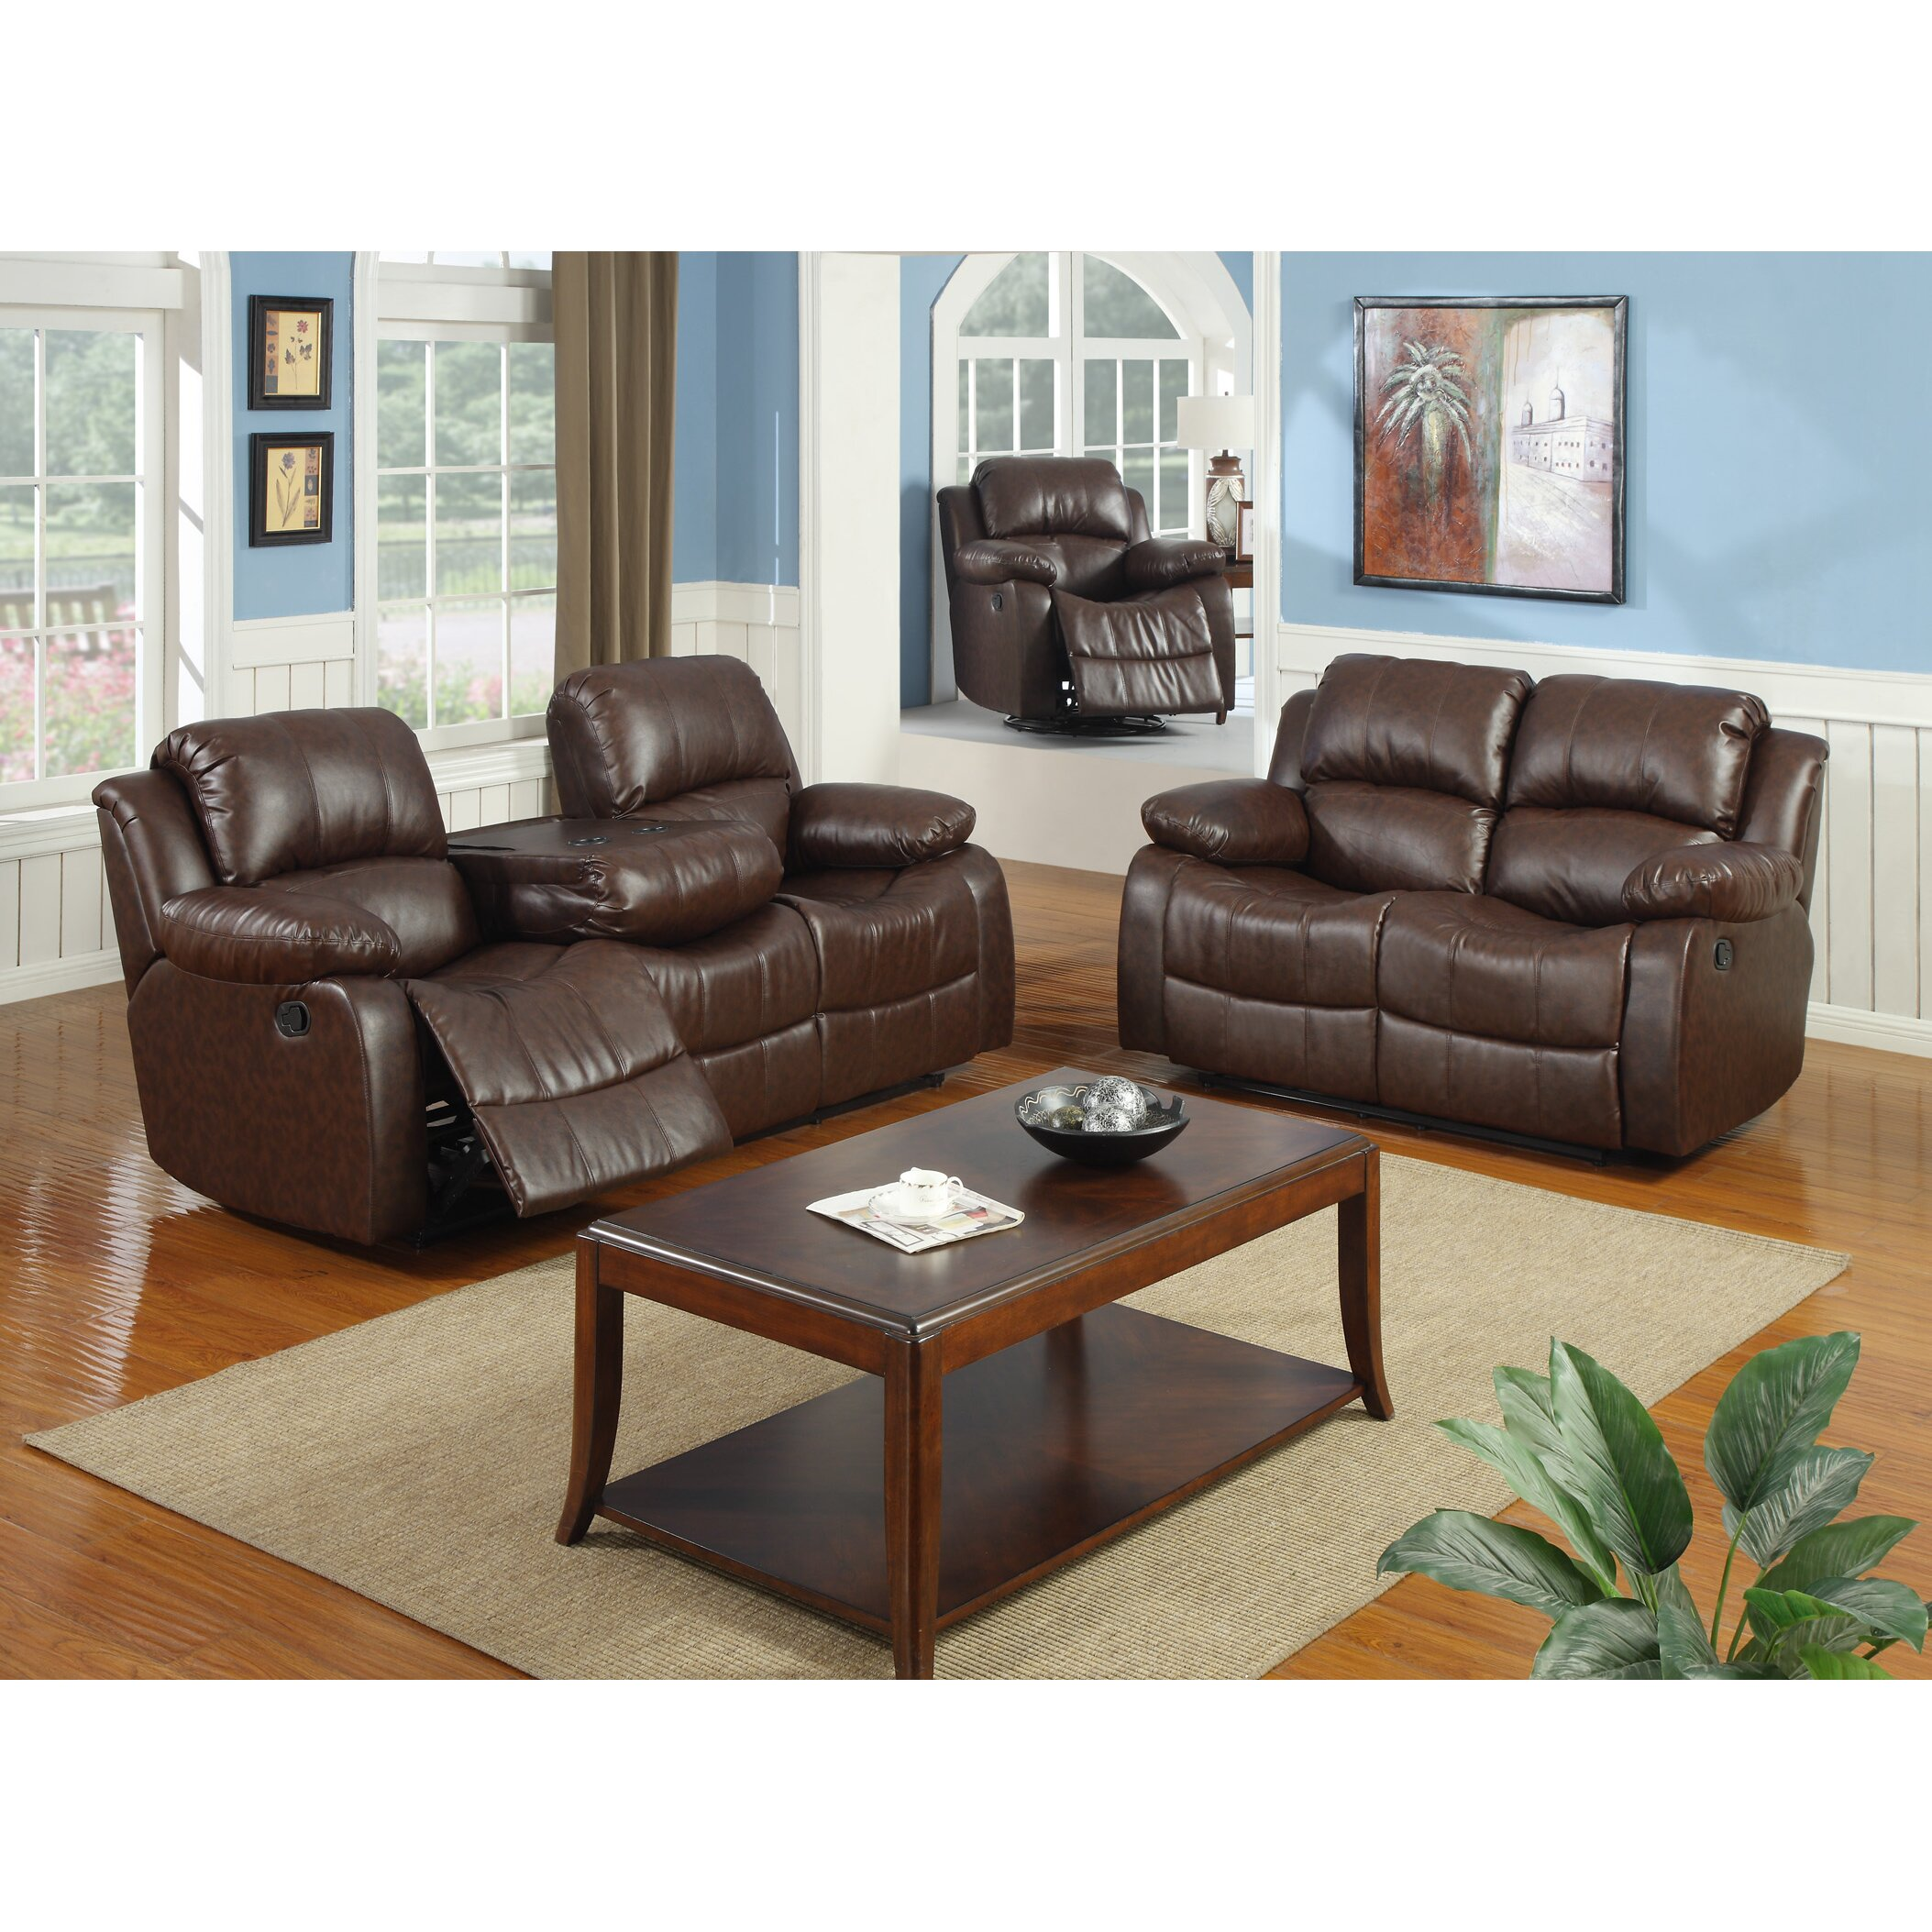 best quality furniture bonded leather 3 piece recliner living room set wayfair. Black Bedroom Furniture Sets. Home Design Ideas